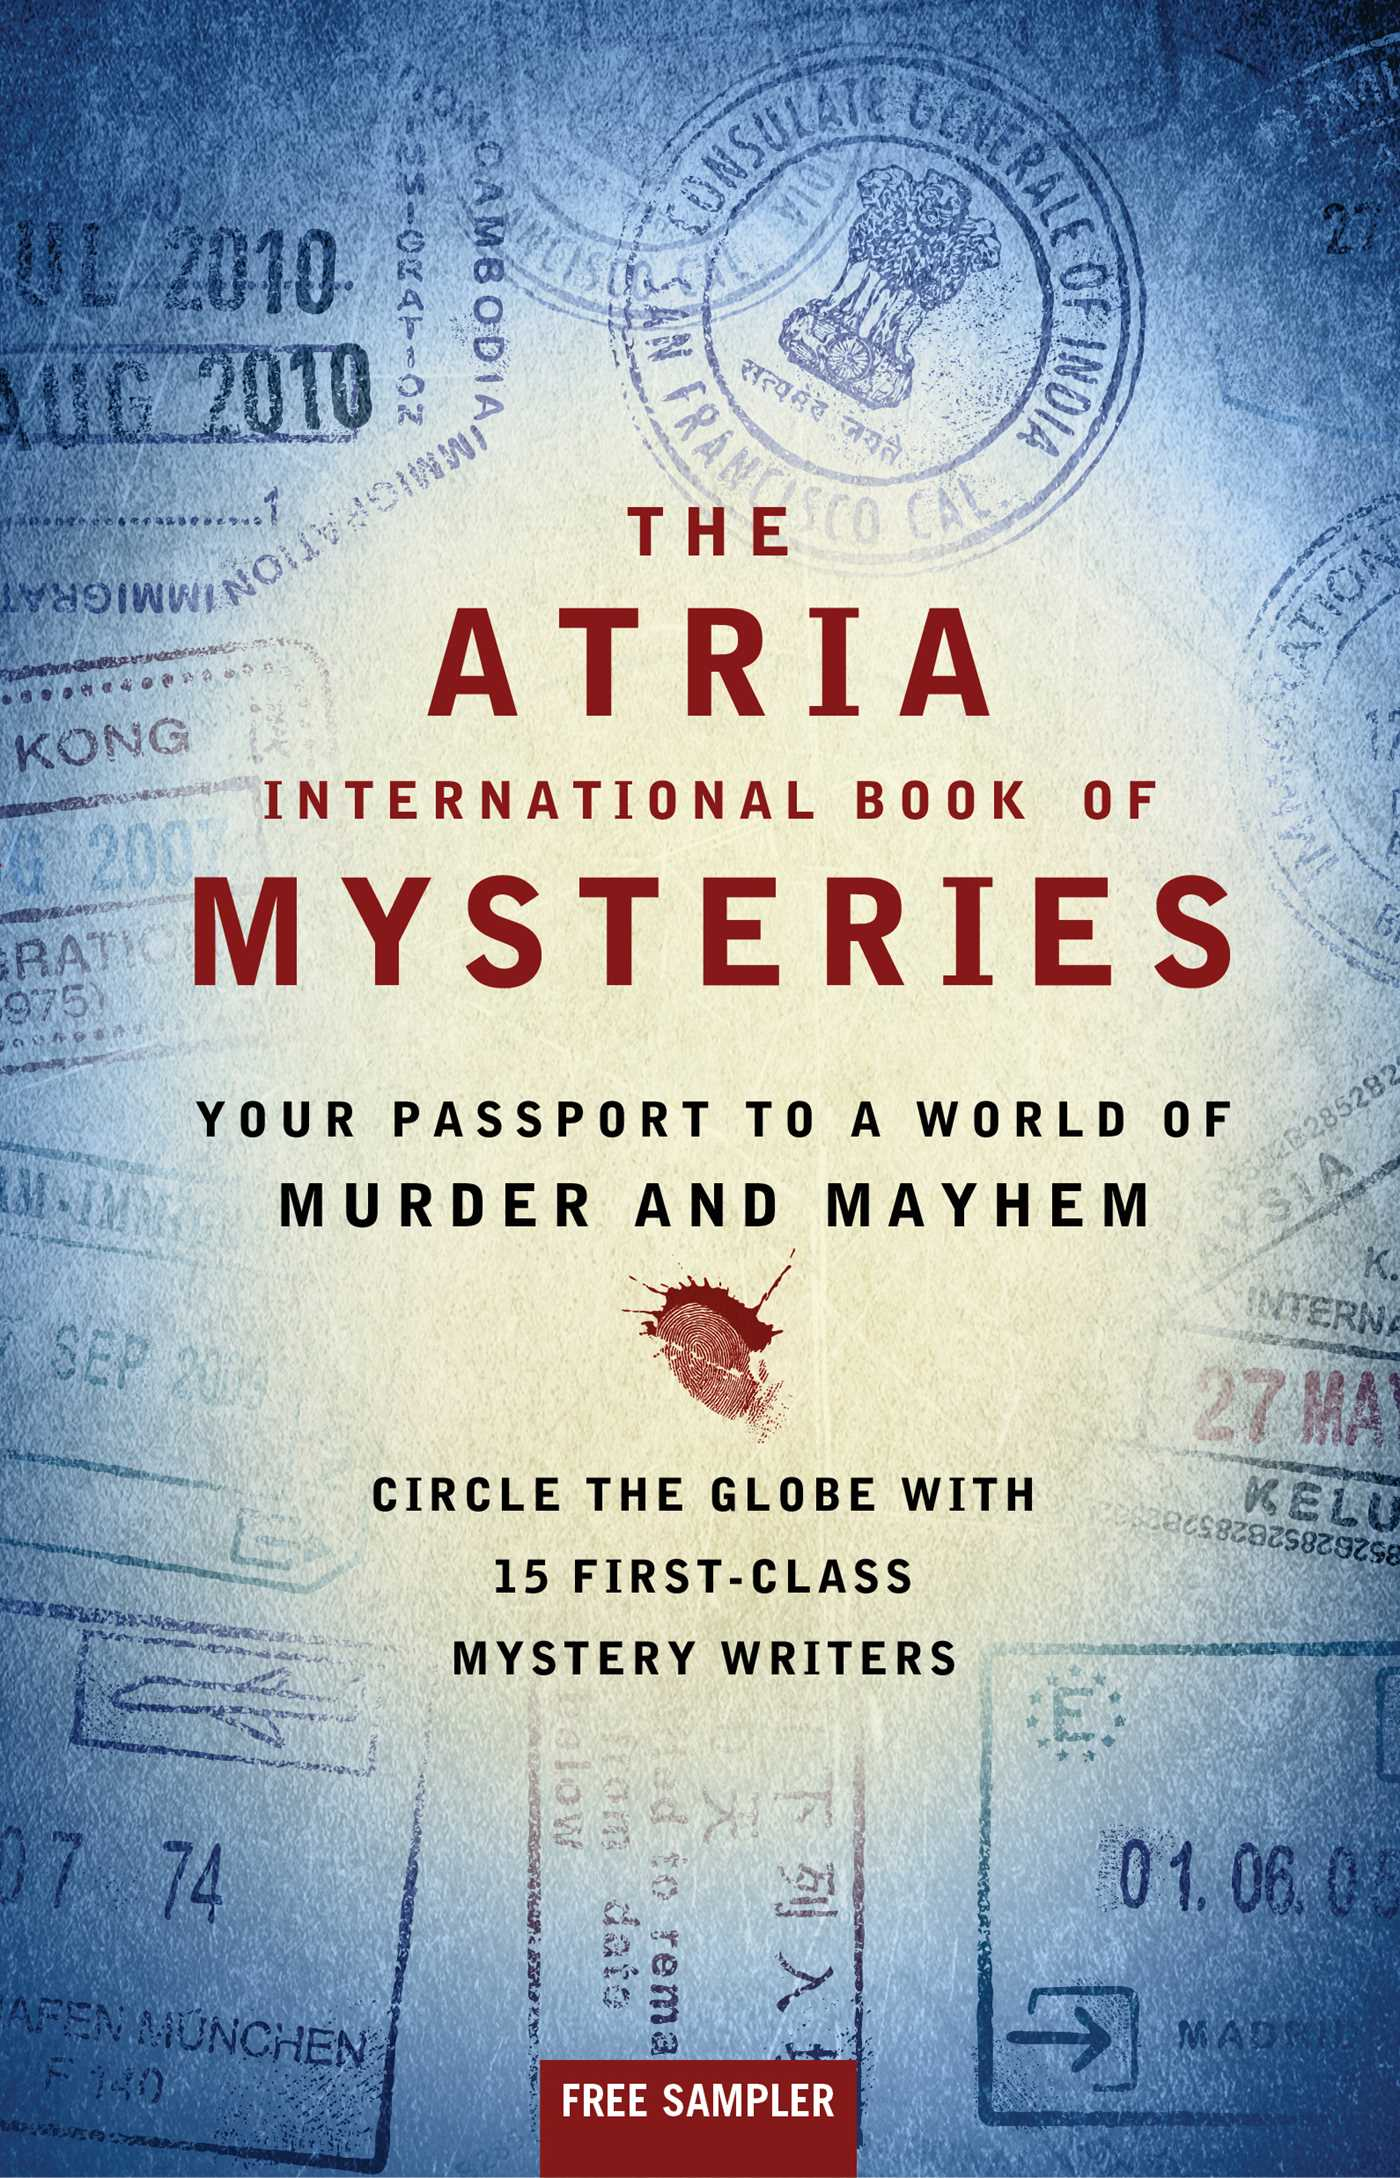 The-atria-international-book-of-mysteries-9781451676655_hr